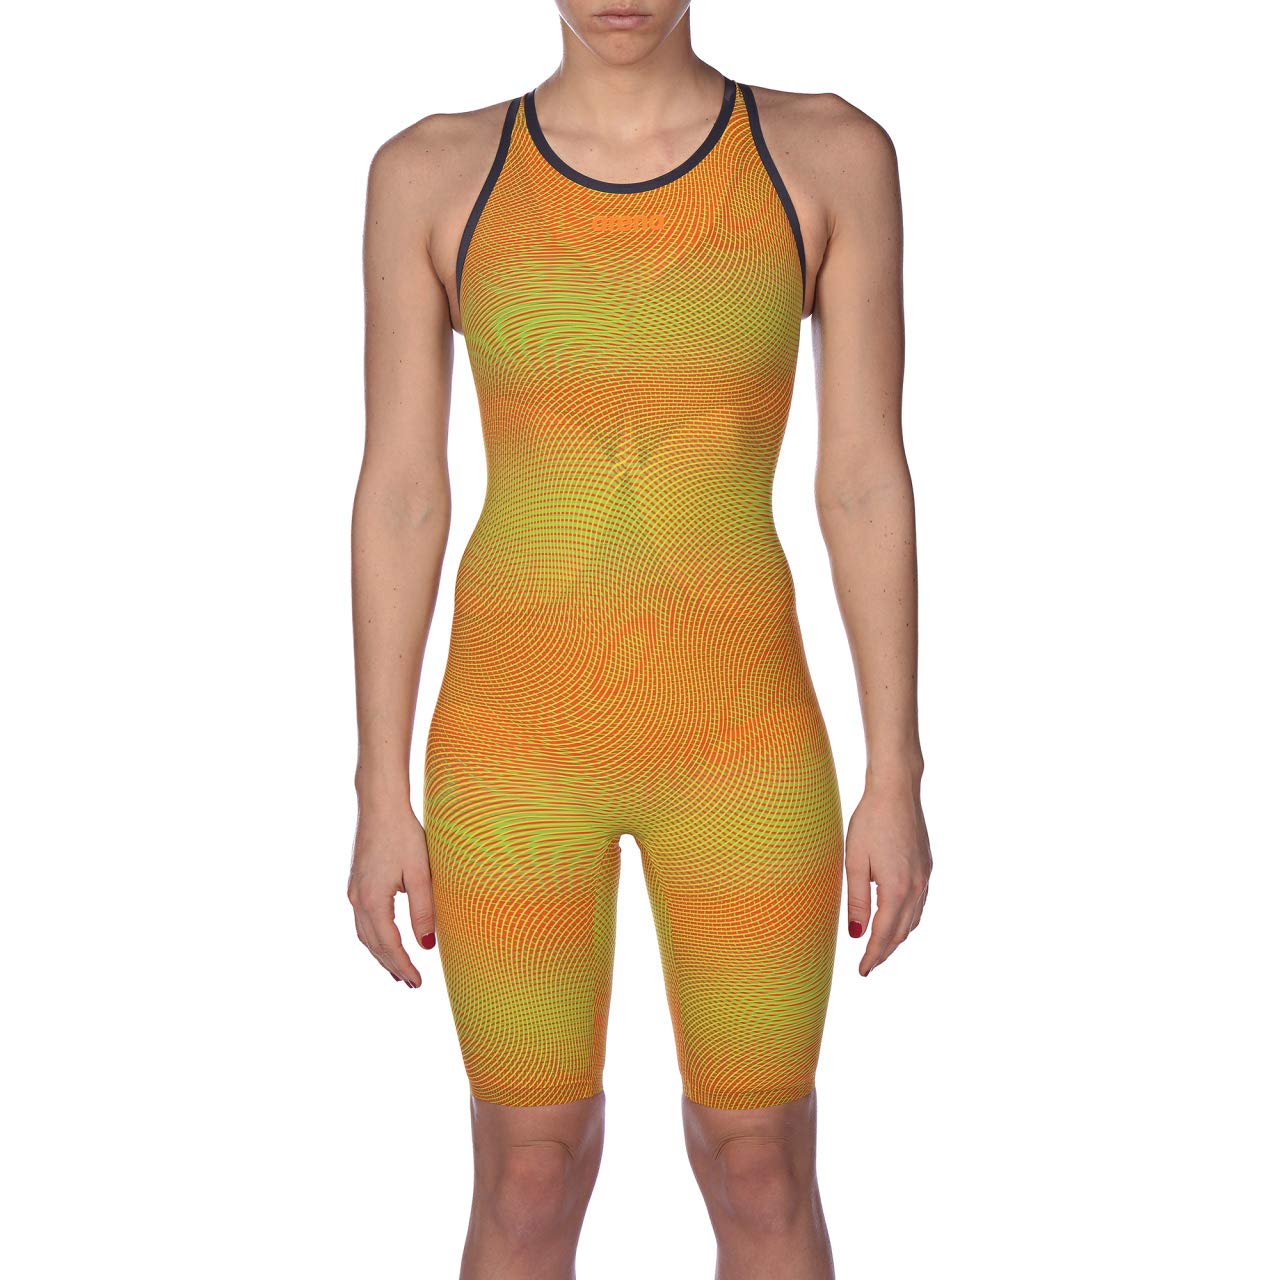 Image of ARENA Women's Powerskin Carbon Air² Fbsl Closed Back Racing Suit